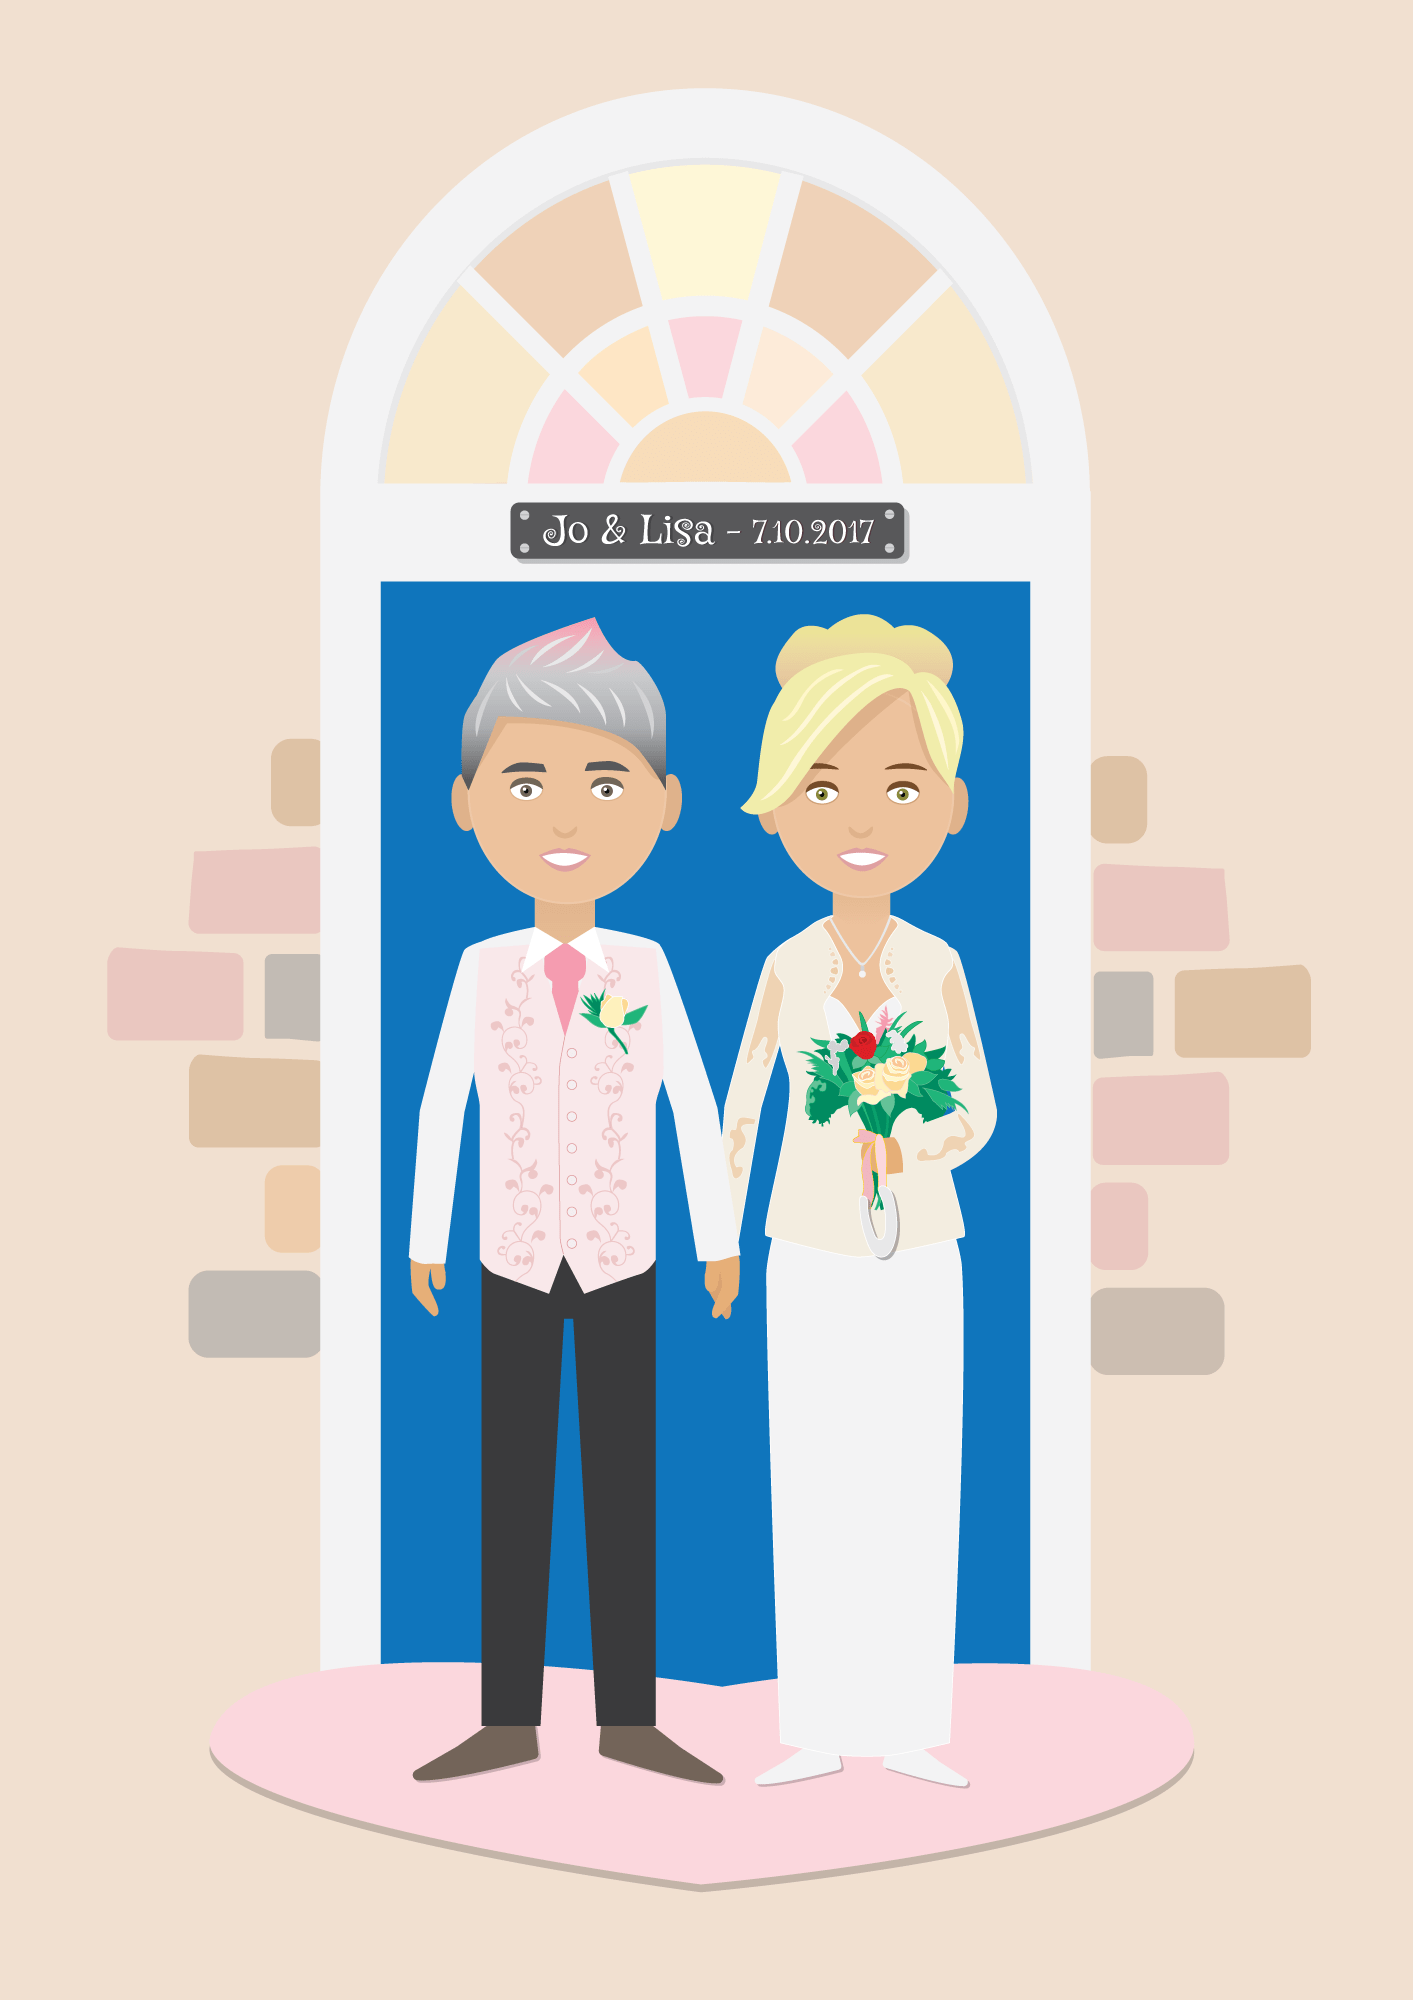 Jo & Lisa: Cartoon Wedding Portrait